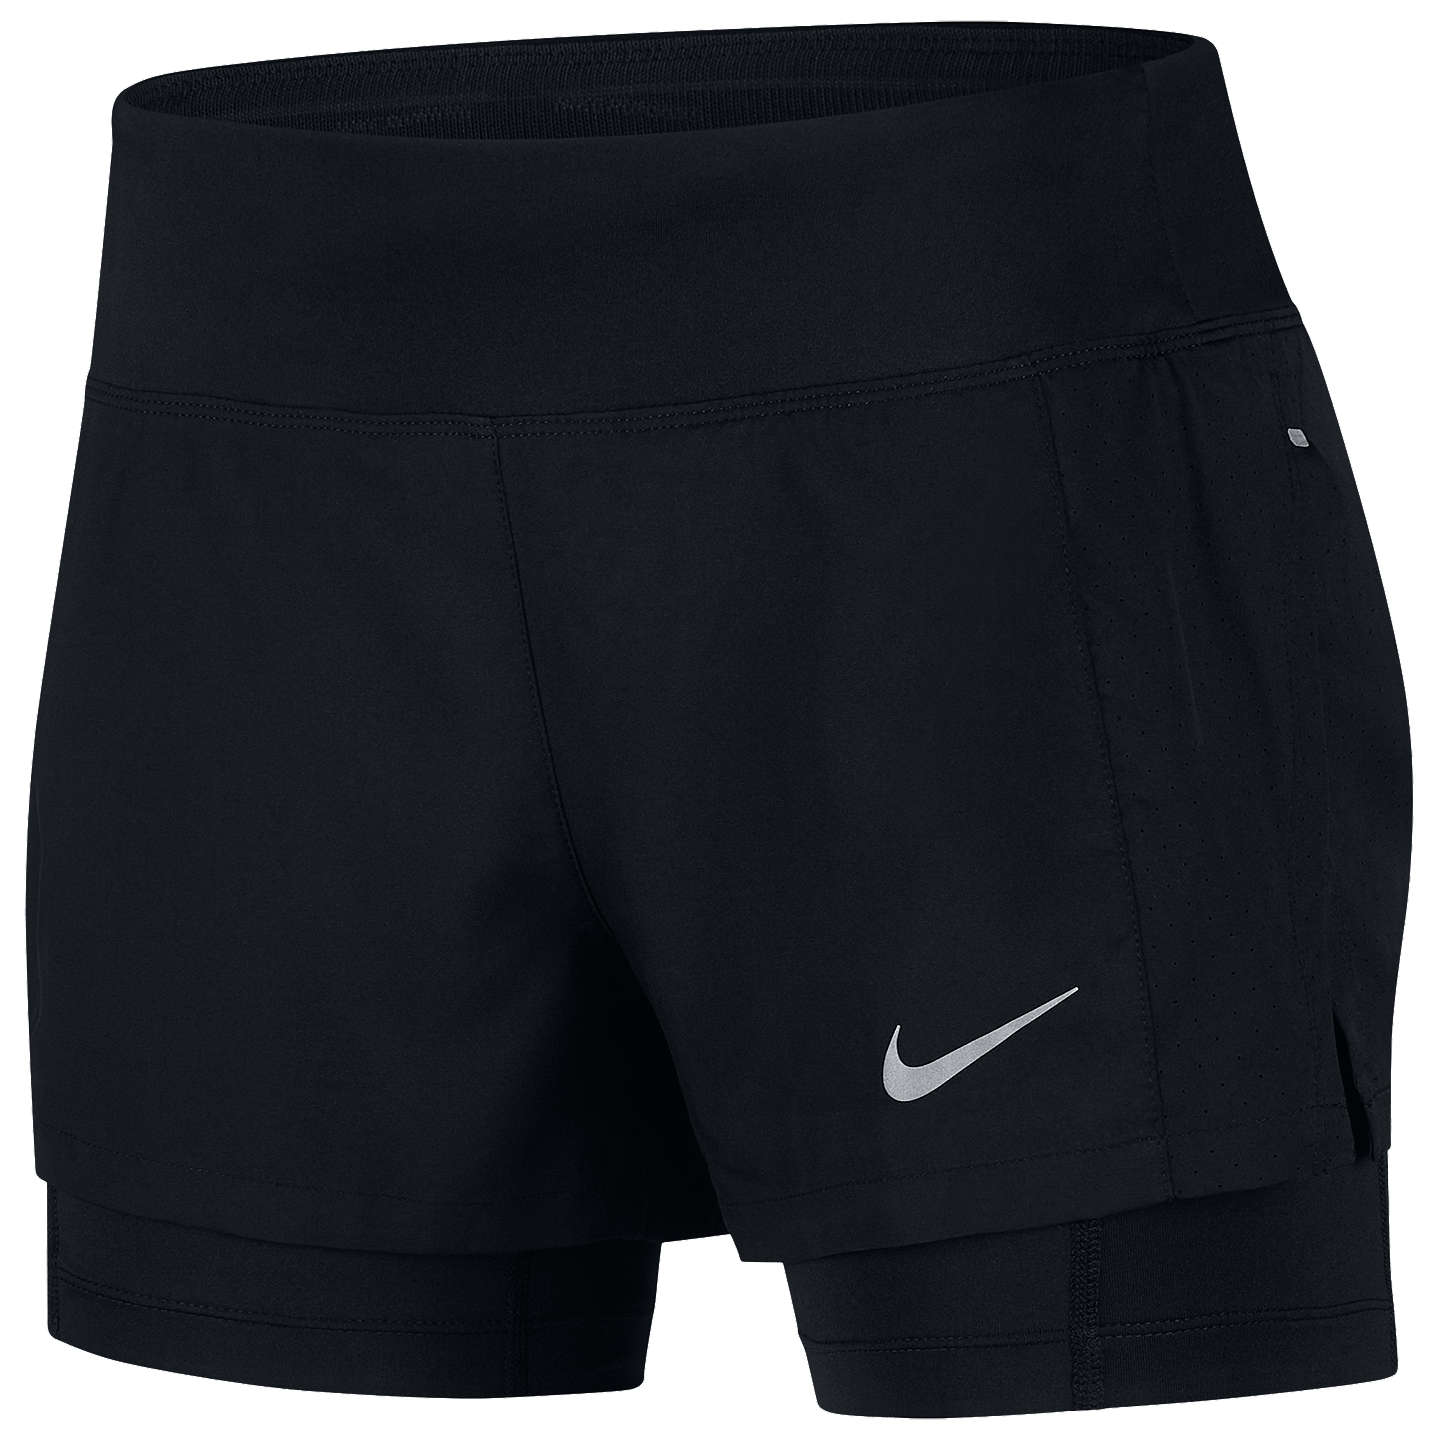 Nike Eclipse 2 In 1 Running Shorts, Black/Reflective Silver by Nike